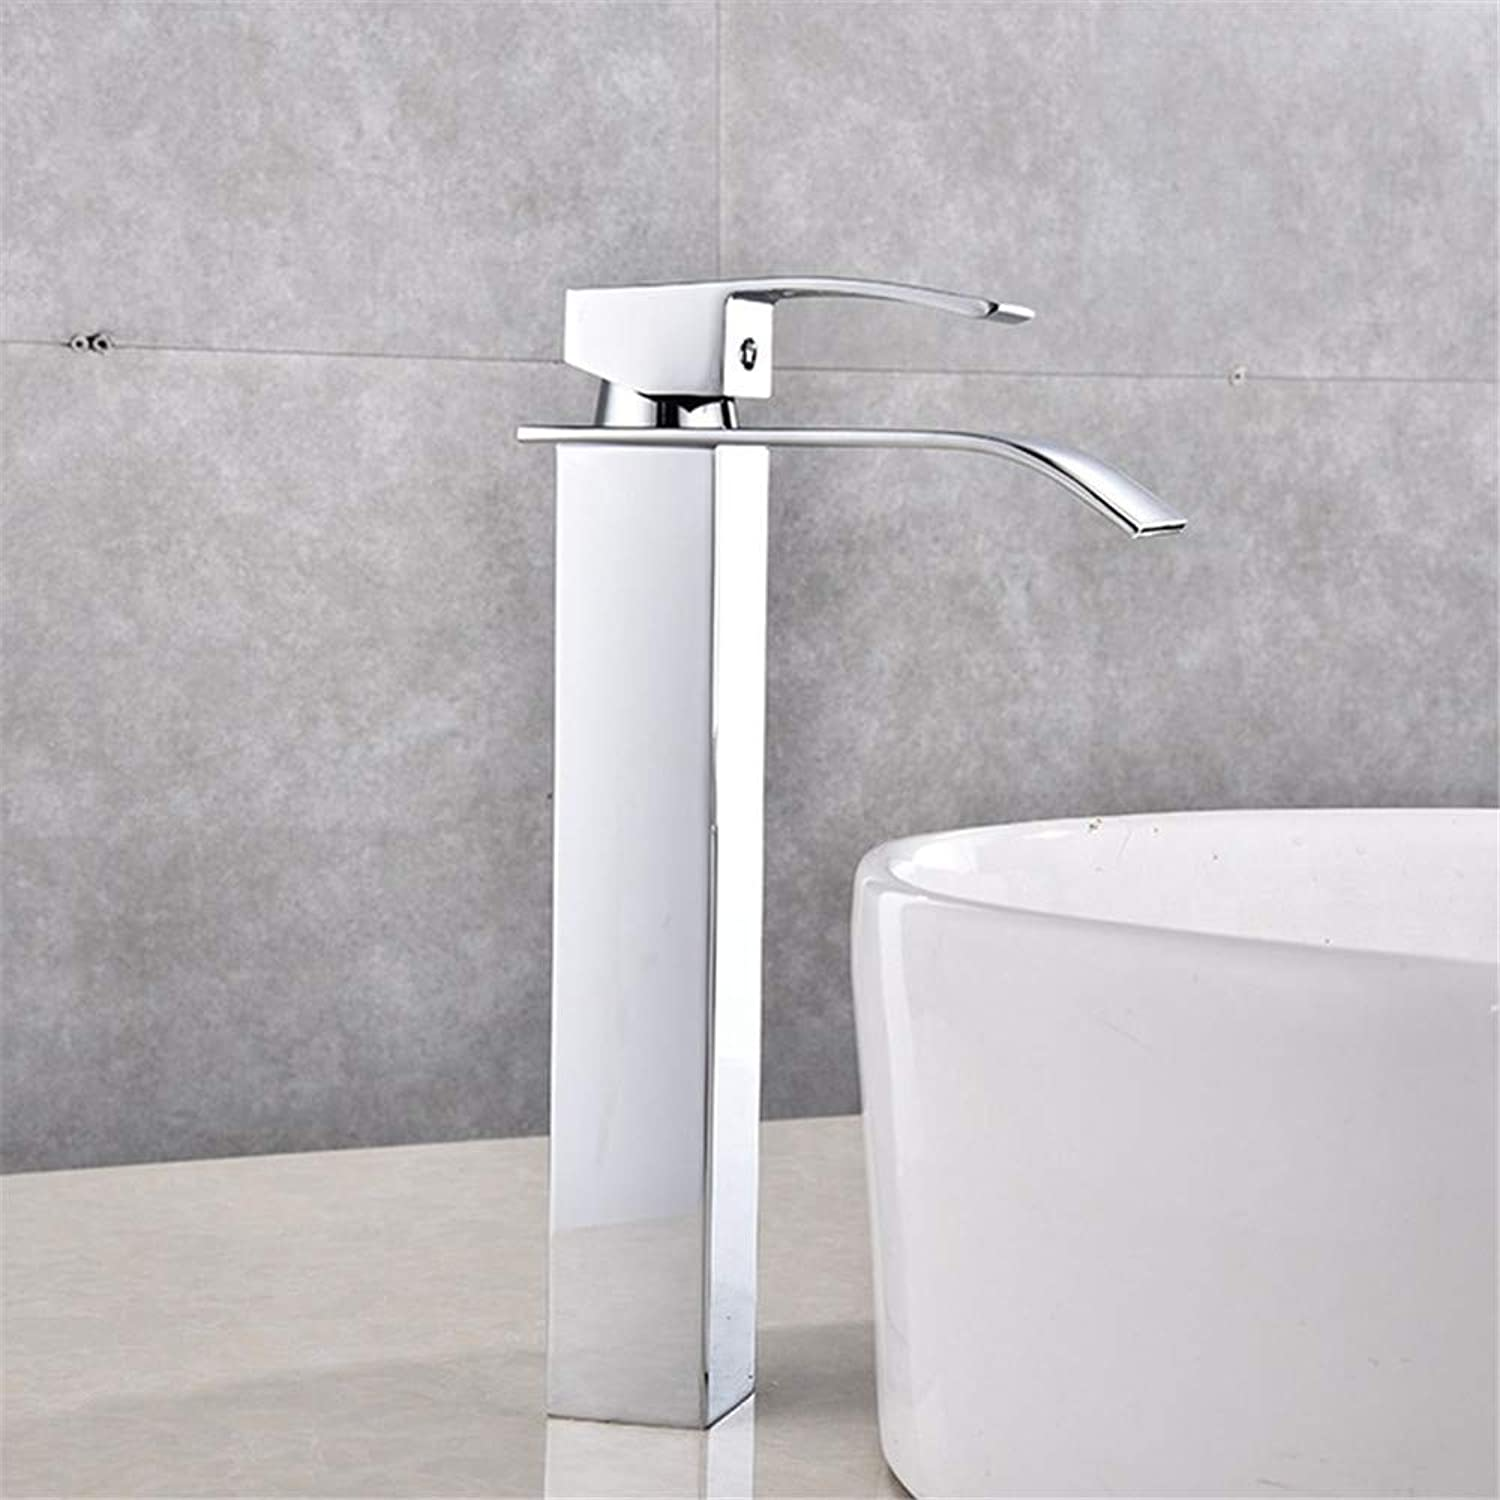 Oudan Stainless Steel Hot and Cold Basin Faucet Waterfall Faucet (color   -, Size   -)